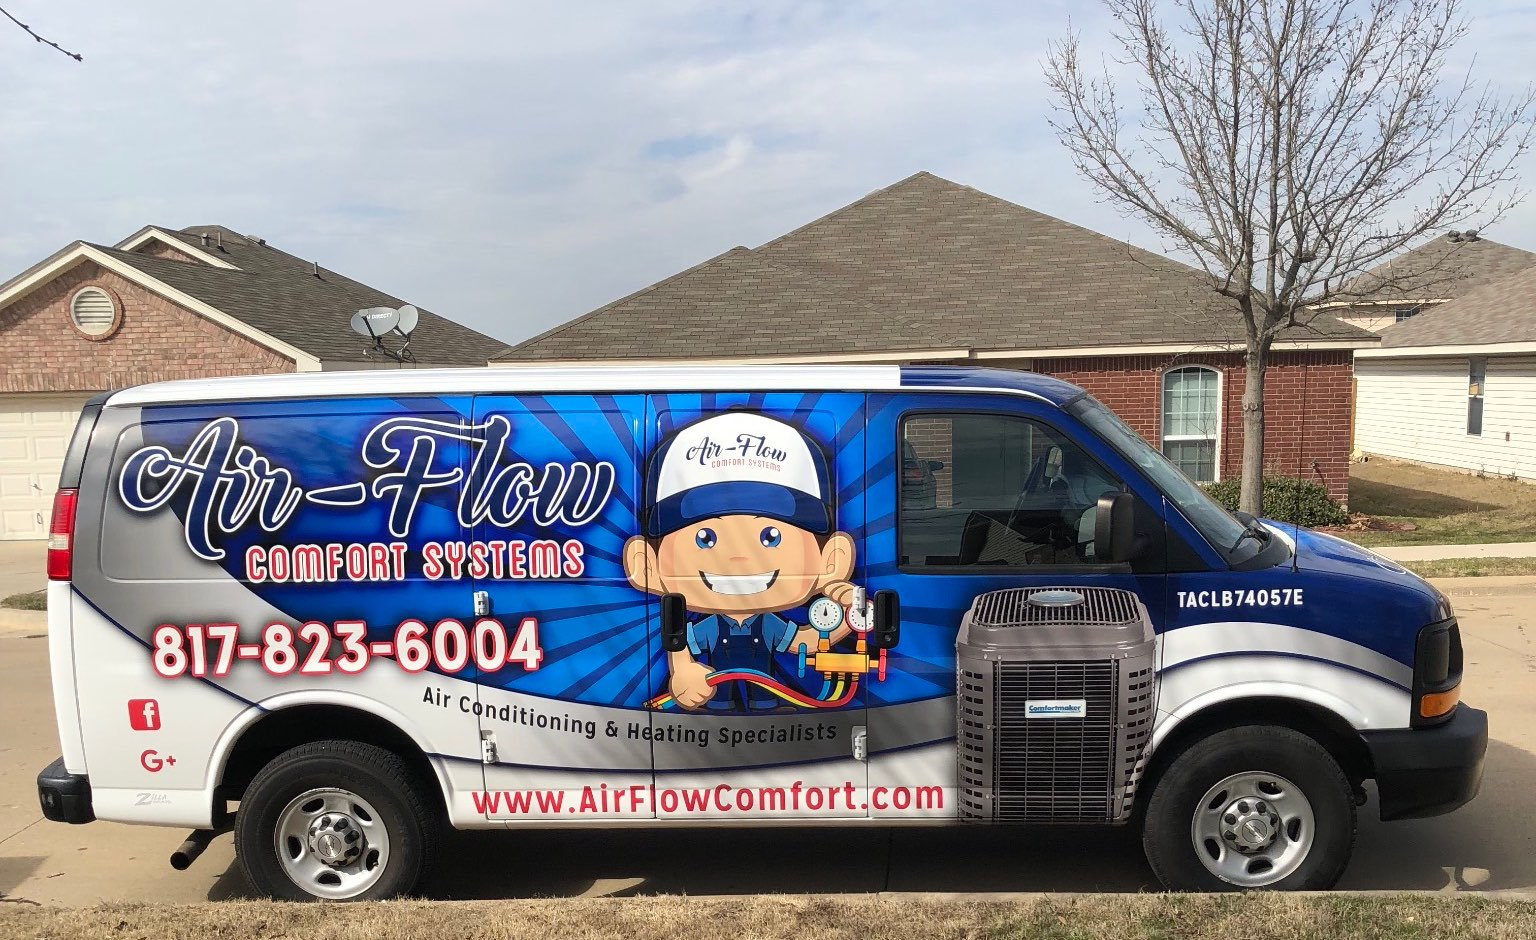 air-flow comfort systems service van